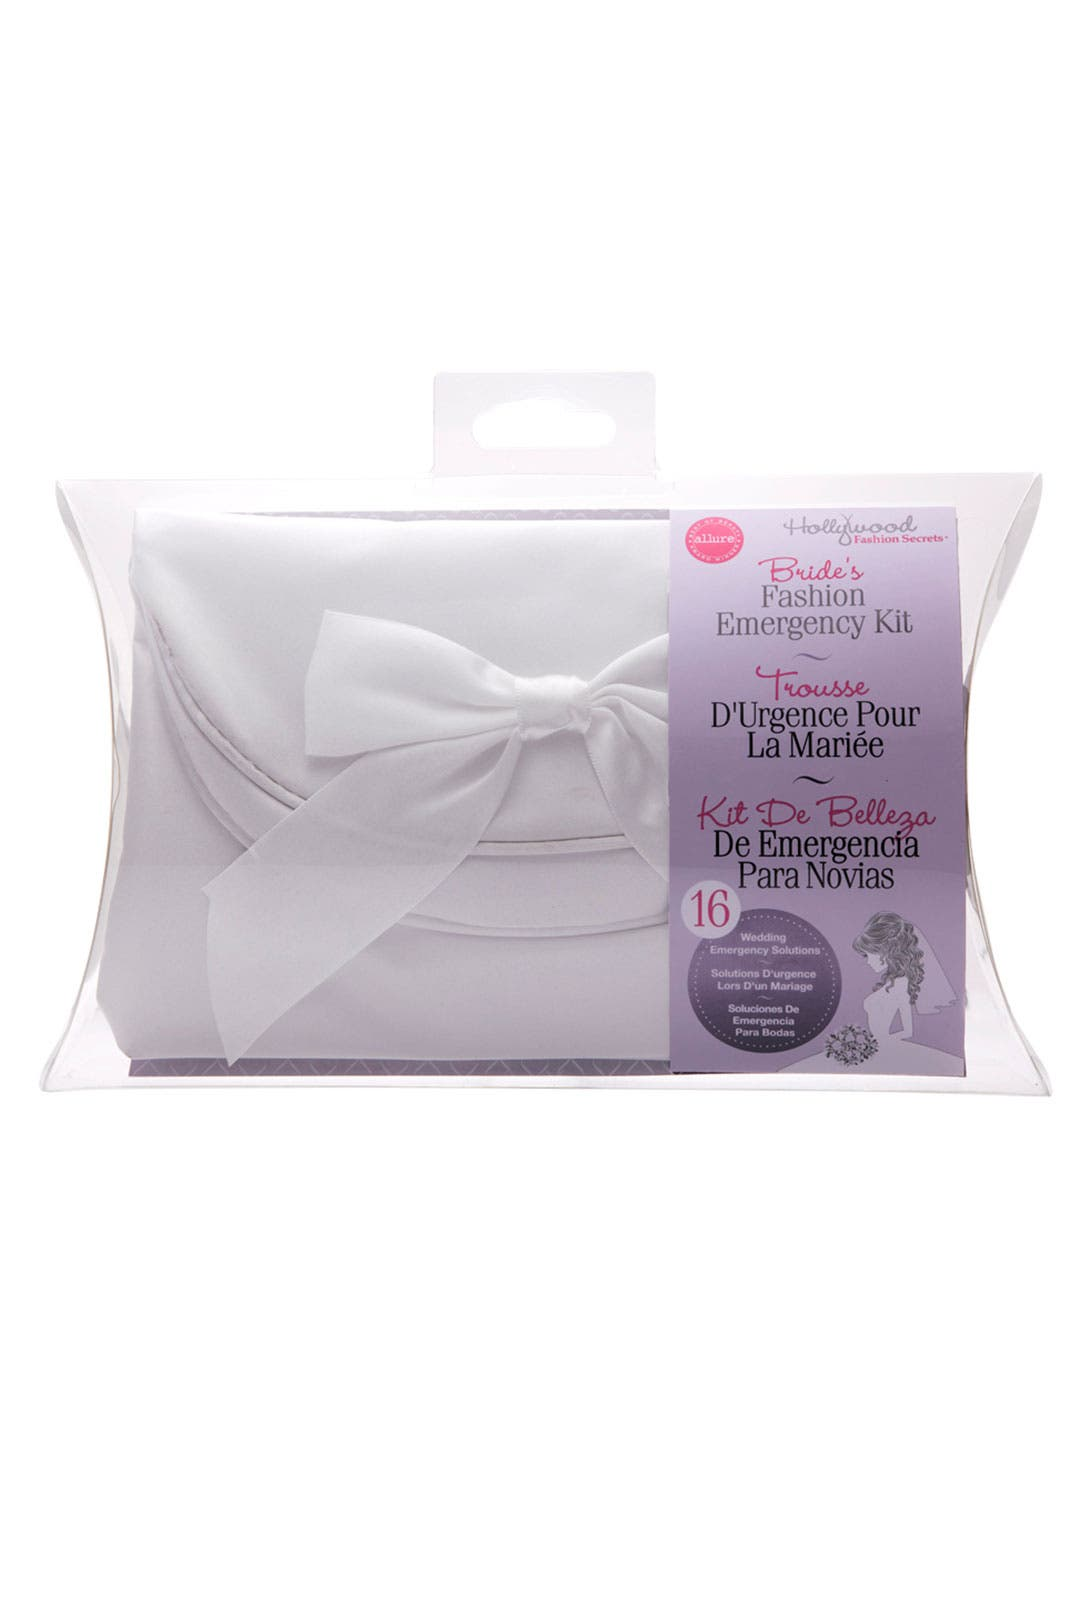 Bride Fashion Emergency Kit by Hollywood Fashion Tape